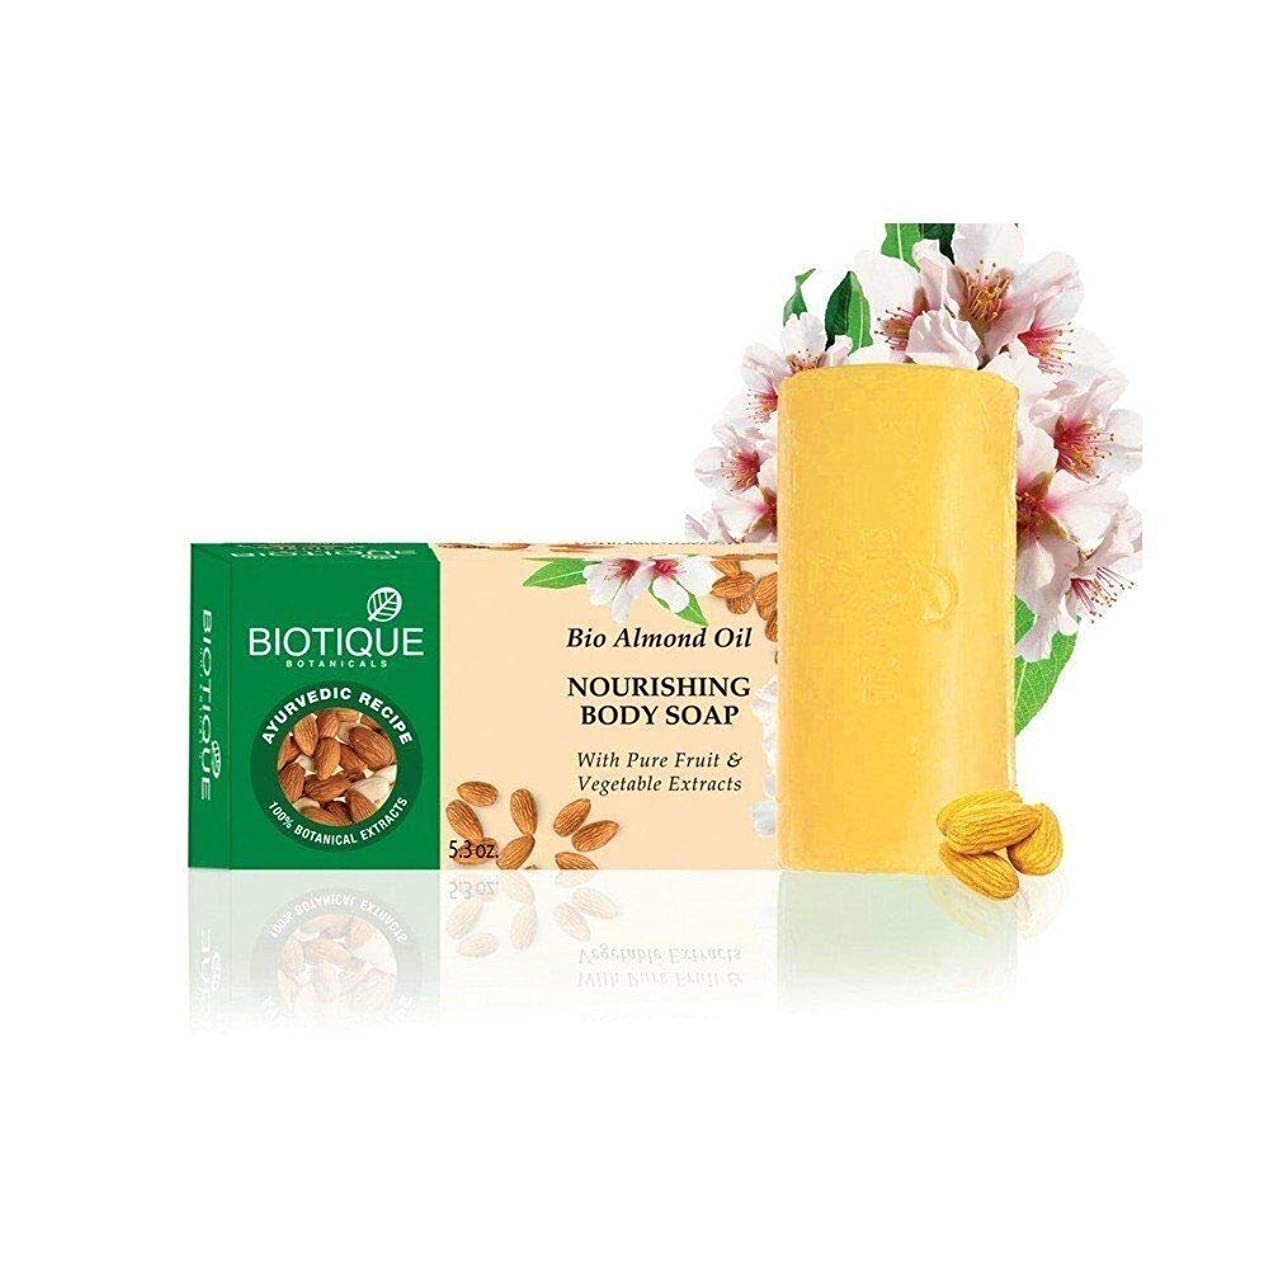 クラフトベーリング海峡弁護士Biotique Bio Almond Oil Nourishing Body Soap - 150g (Pack of 2) wash Impurities Biotique Bio Almond Oilナリッシングボディソープ - 洗浄不純物